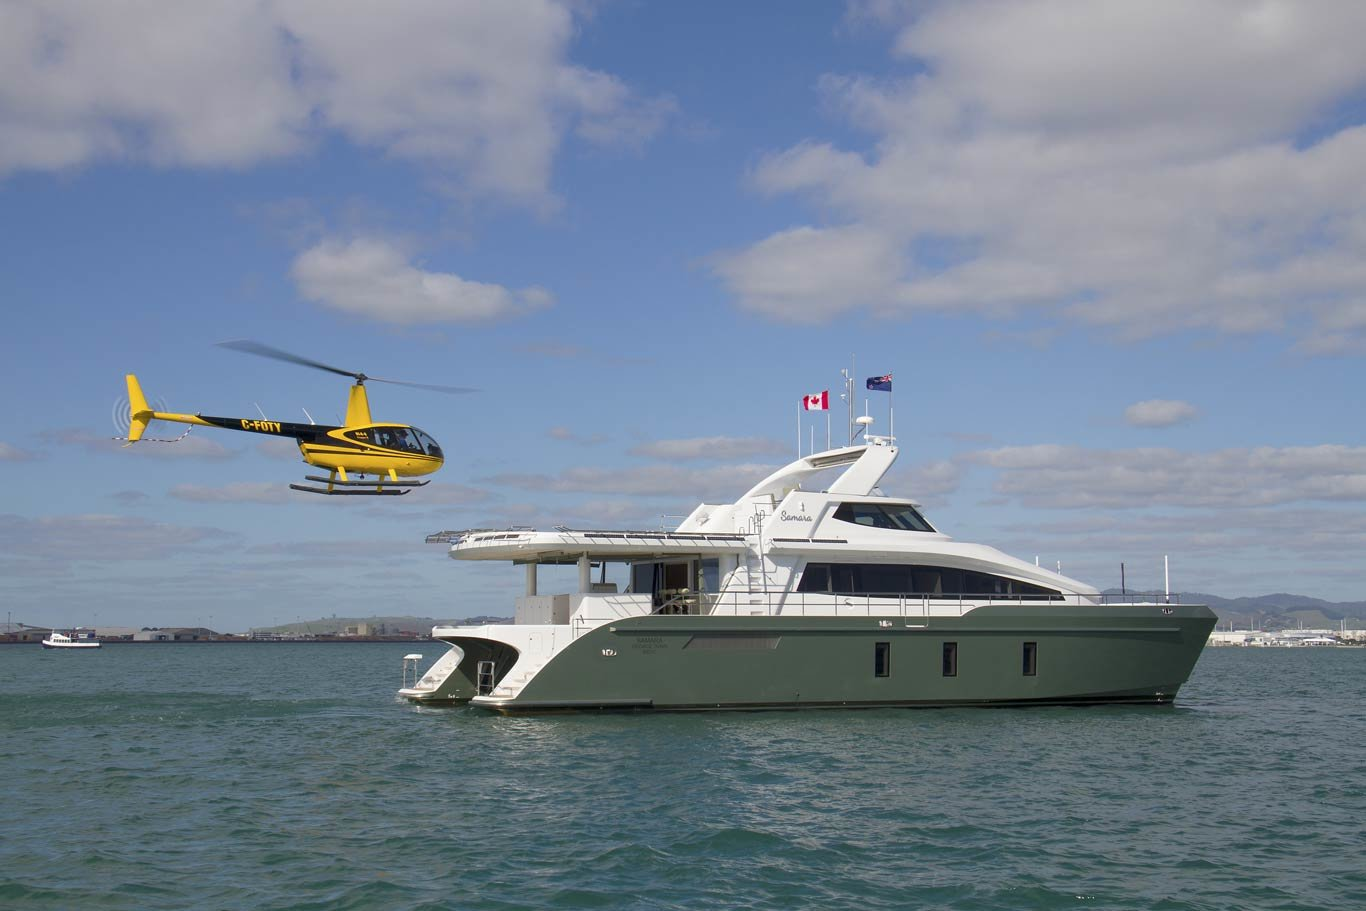 Heli-Yacht where to advertize? - General Helicopter